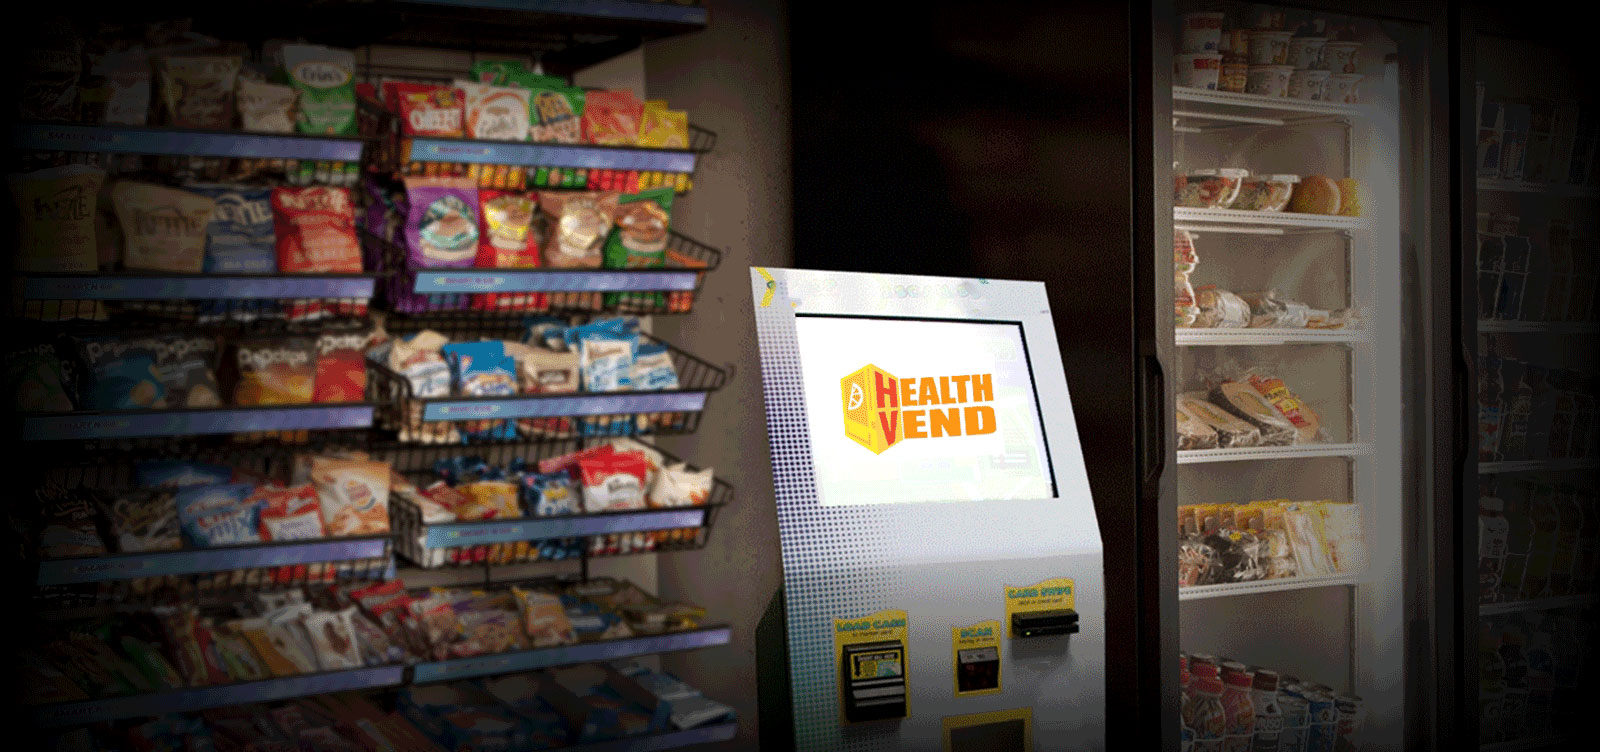 Wholesale micromarket snacks and beverages distributor Health Vend